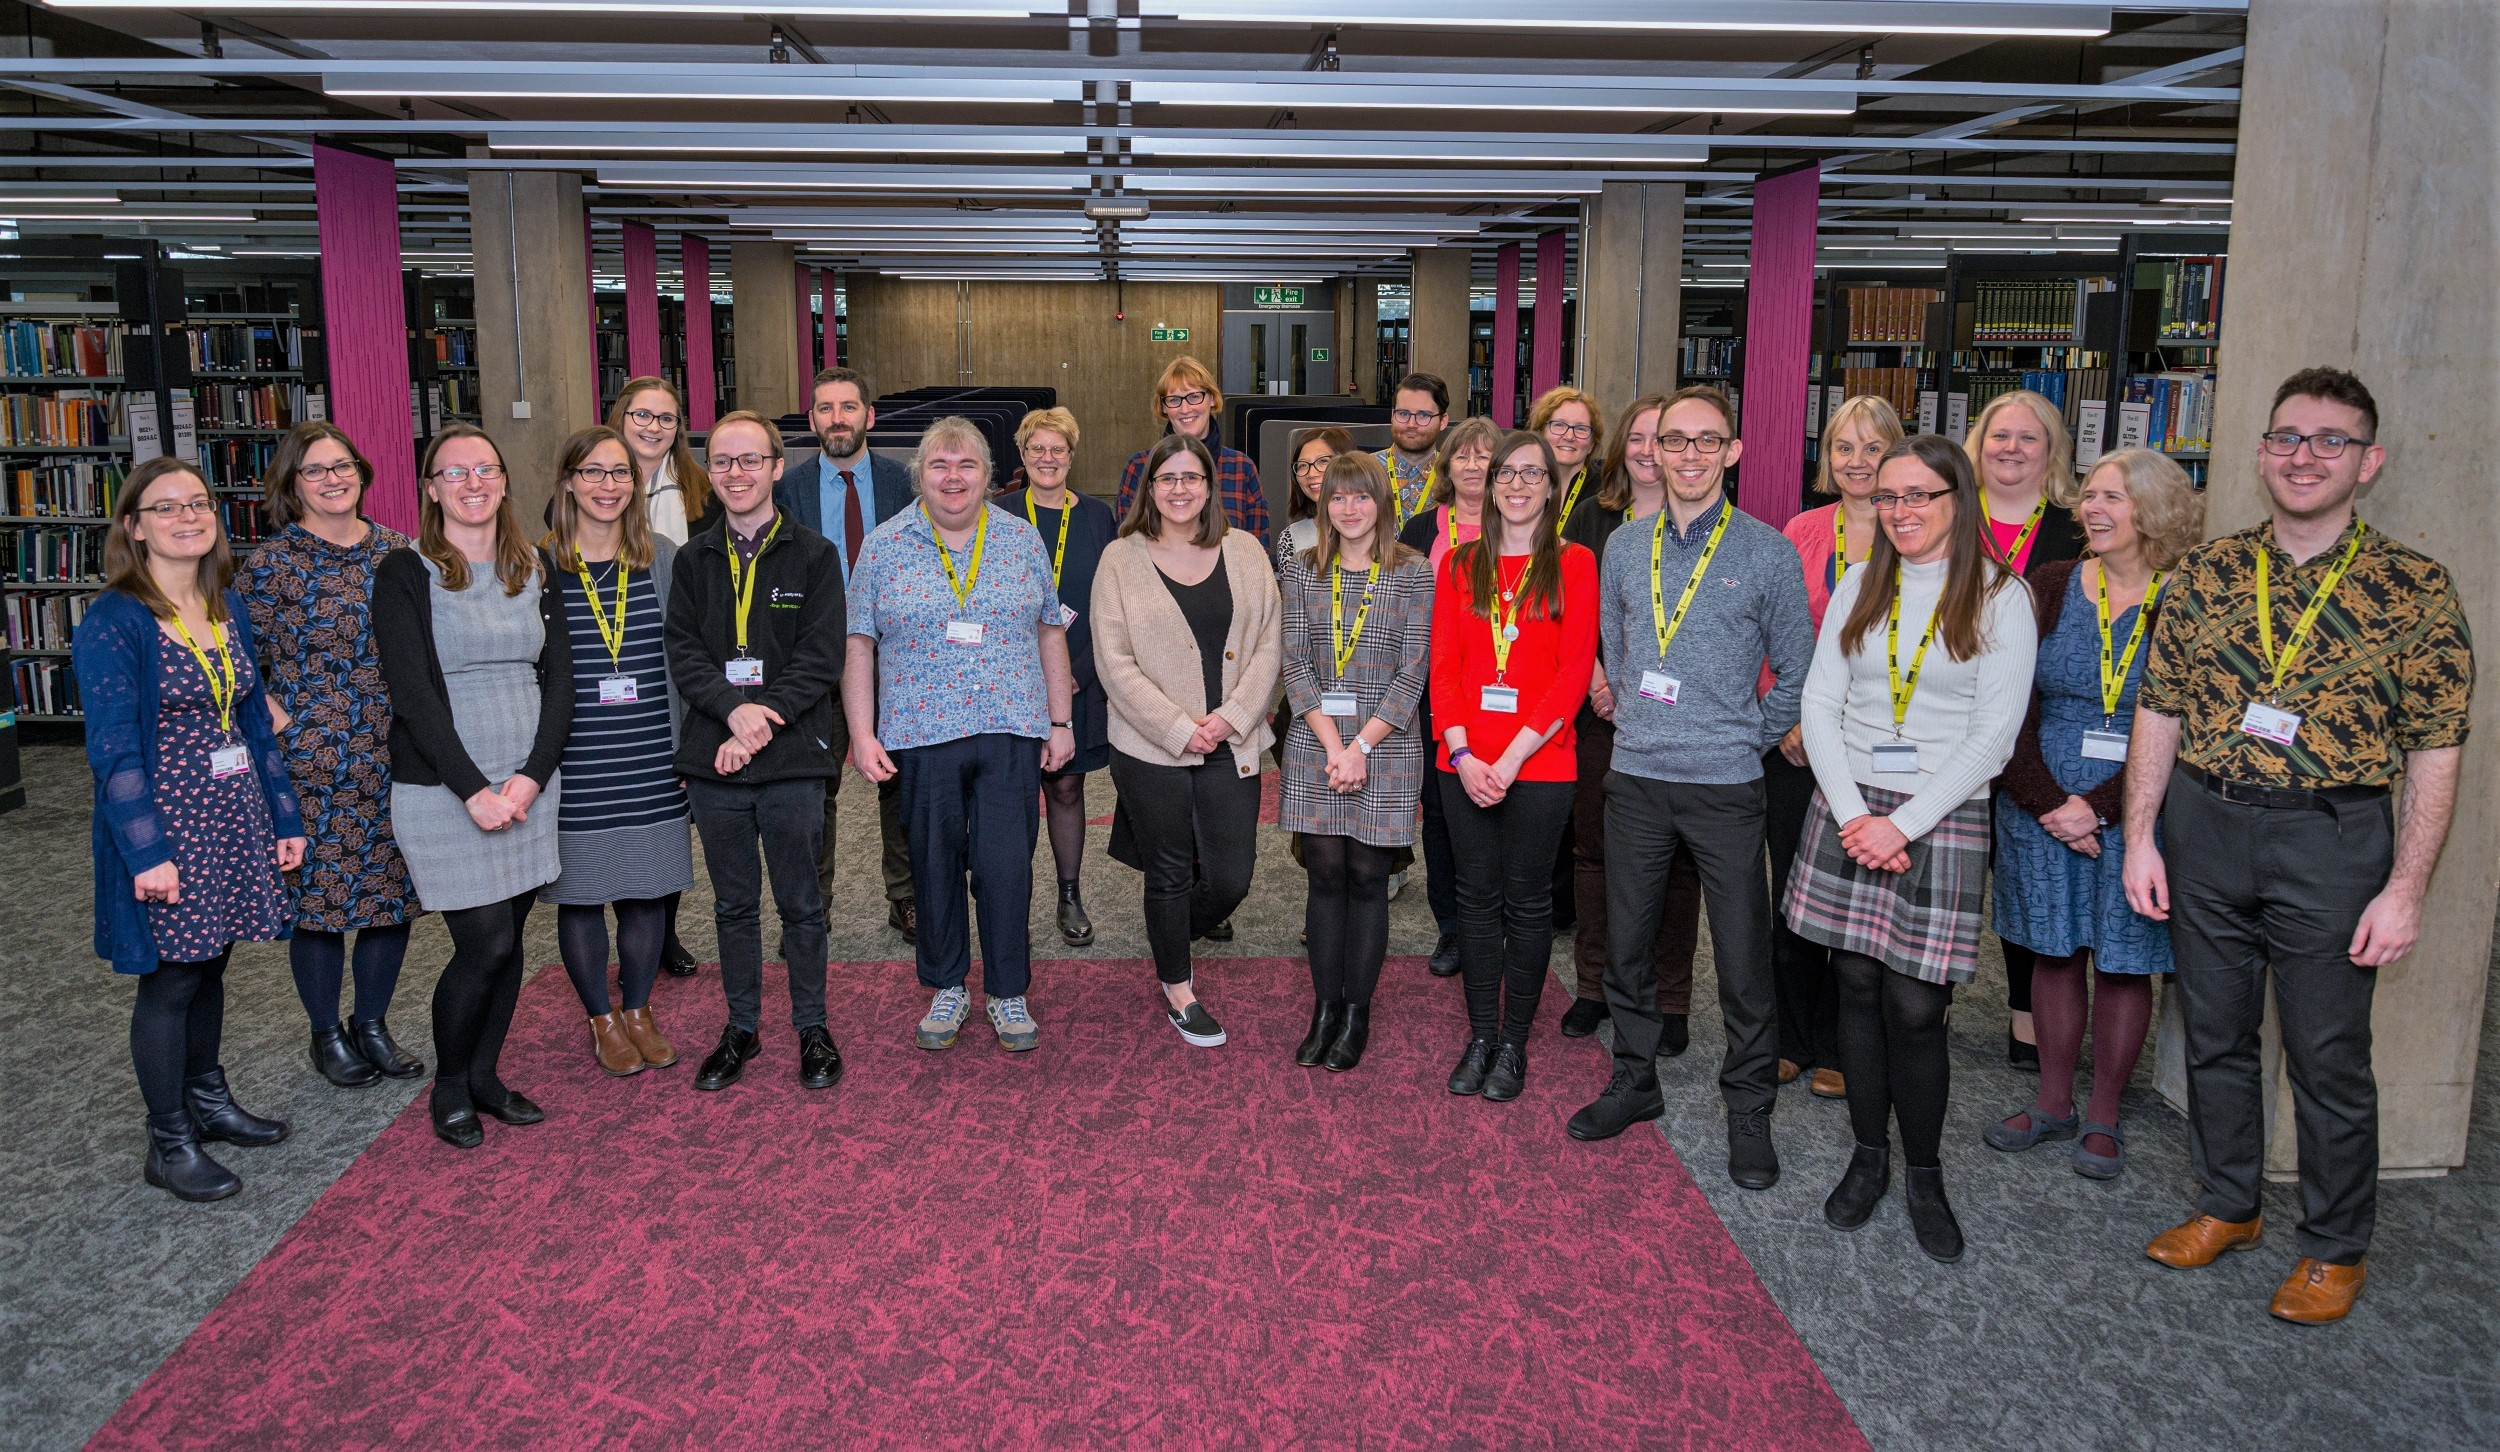 University of Essex Library Services Staff Photo